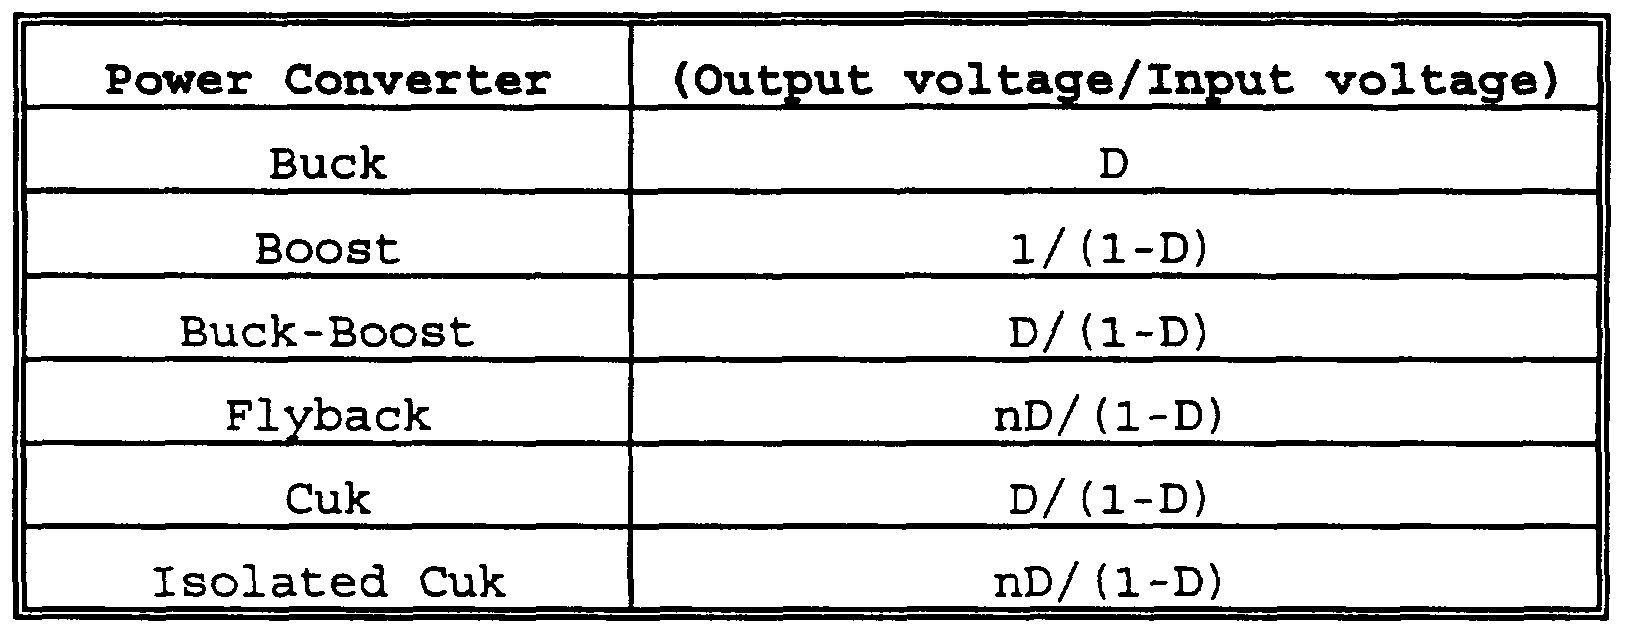 Brevet wo1996009686a1 pwm converters for three phase ac power figure imgf0000180001 geenschuldenfo Choice Image